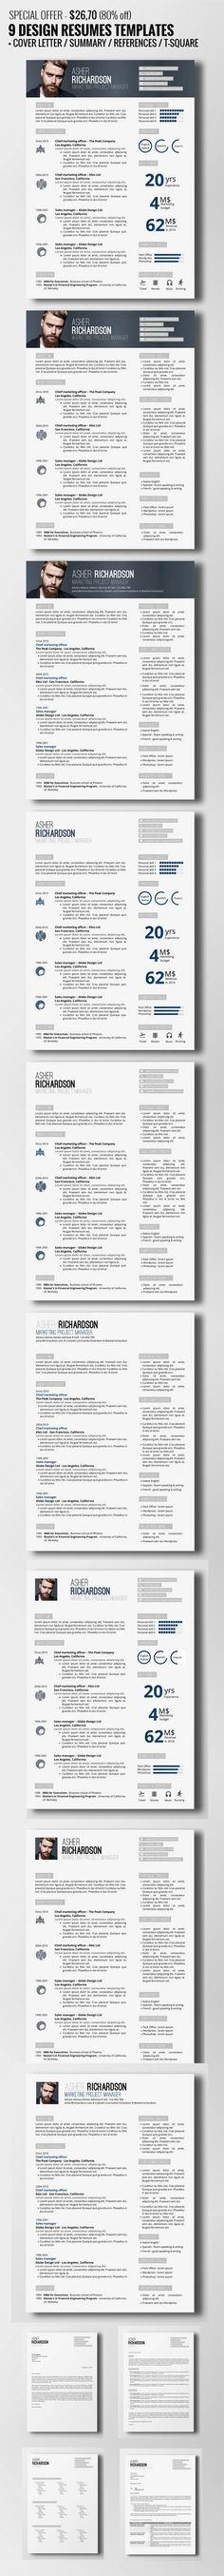 435 best Resume images on Pinterest Resume design, Design resume - unique resumes templates